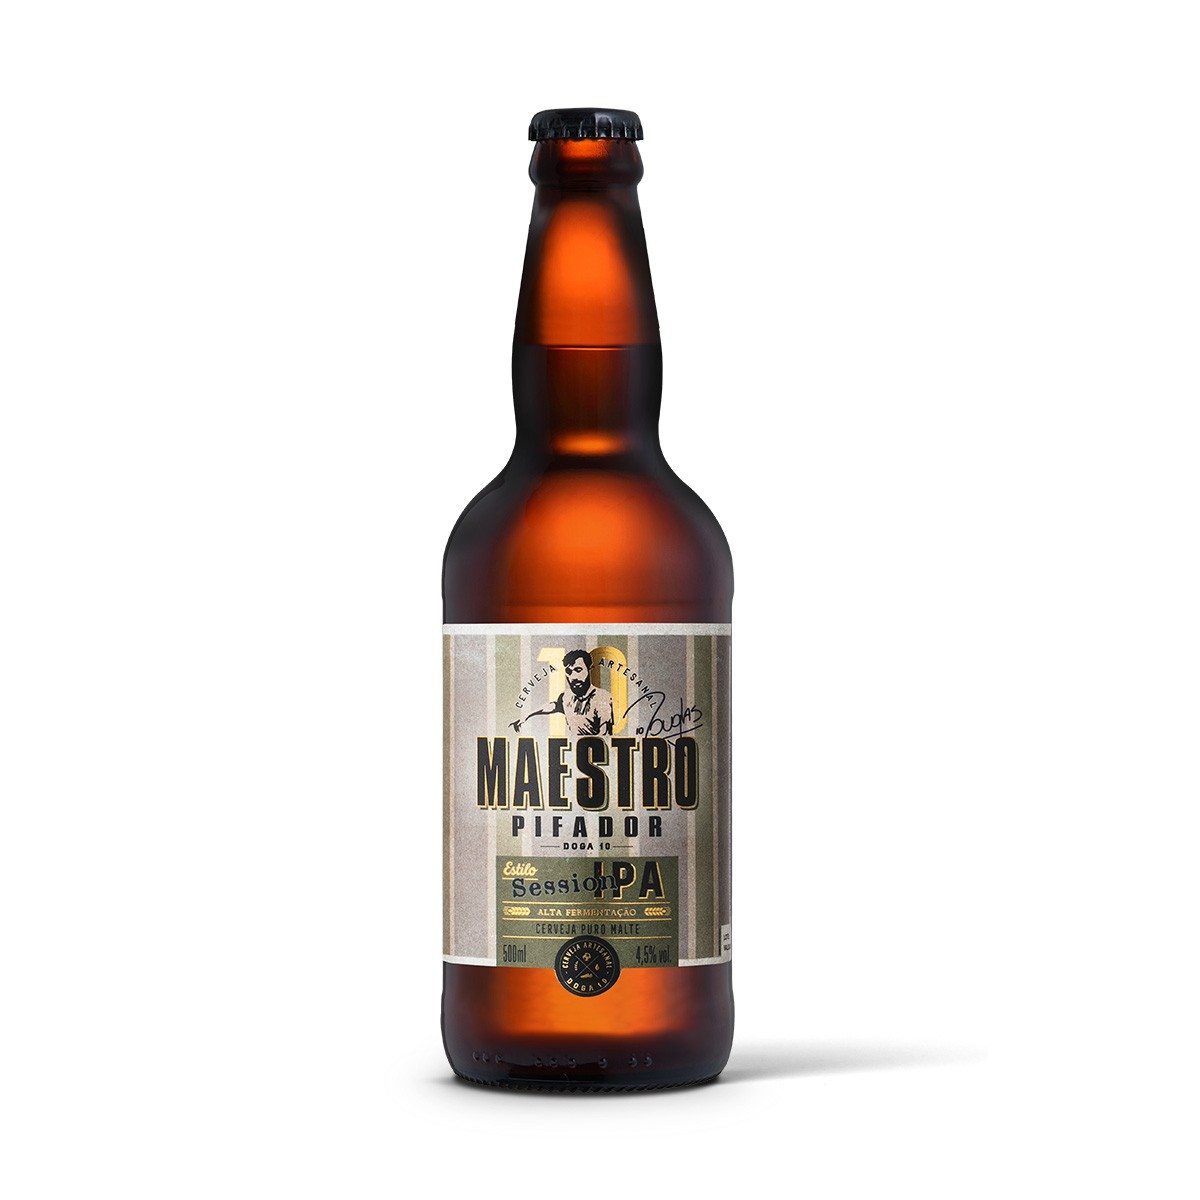 Maestro Pifador Doga 10 Session IPA 500ml